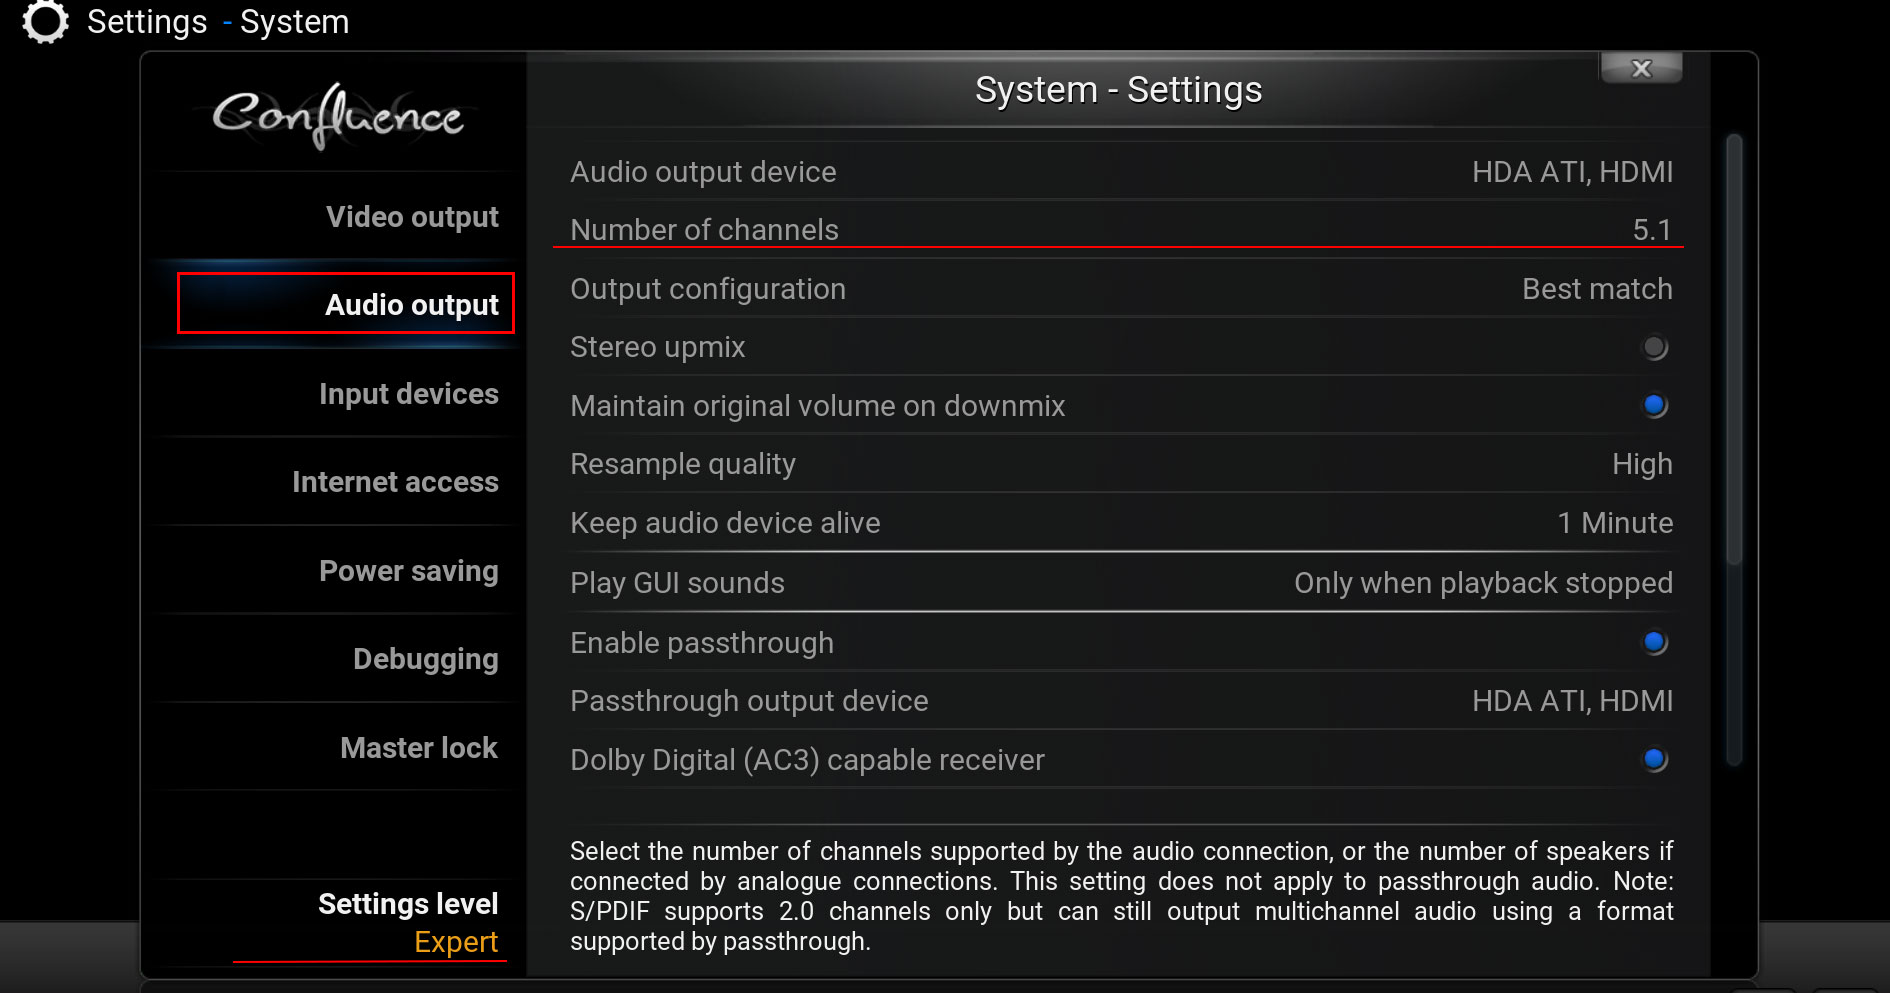 Demistify 51 71 Surround Sound With A Htpc And Kodi 7 1 Wiring Diagram We Can Tell To Output Audio Into These Number Of Channels If You Have System Just Put The